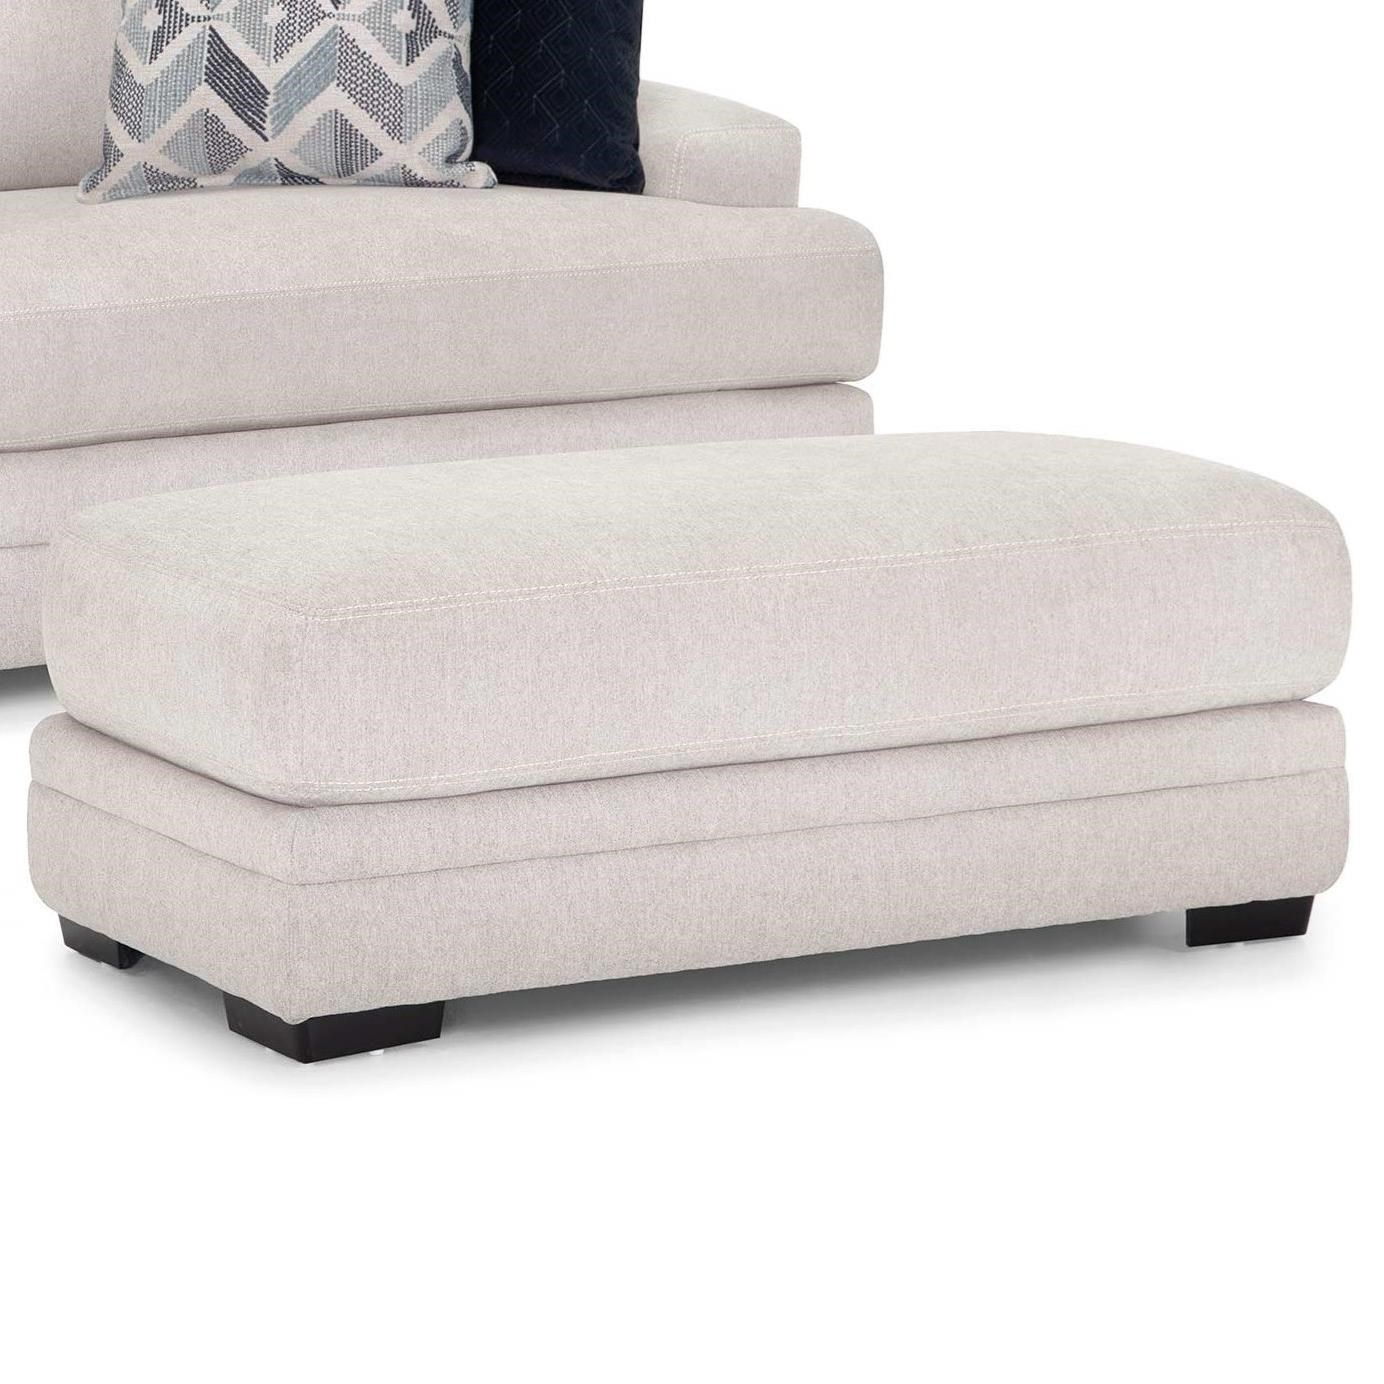 Cleo Ottoman by Franklin at Pilgrim Furniture City